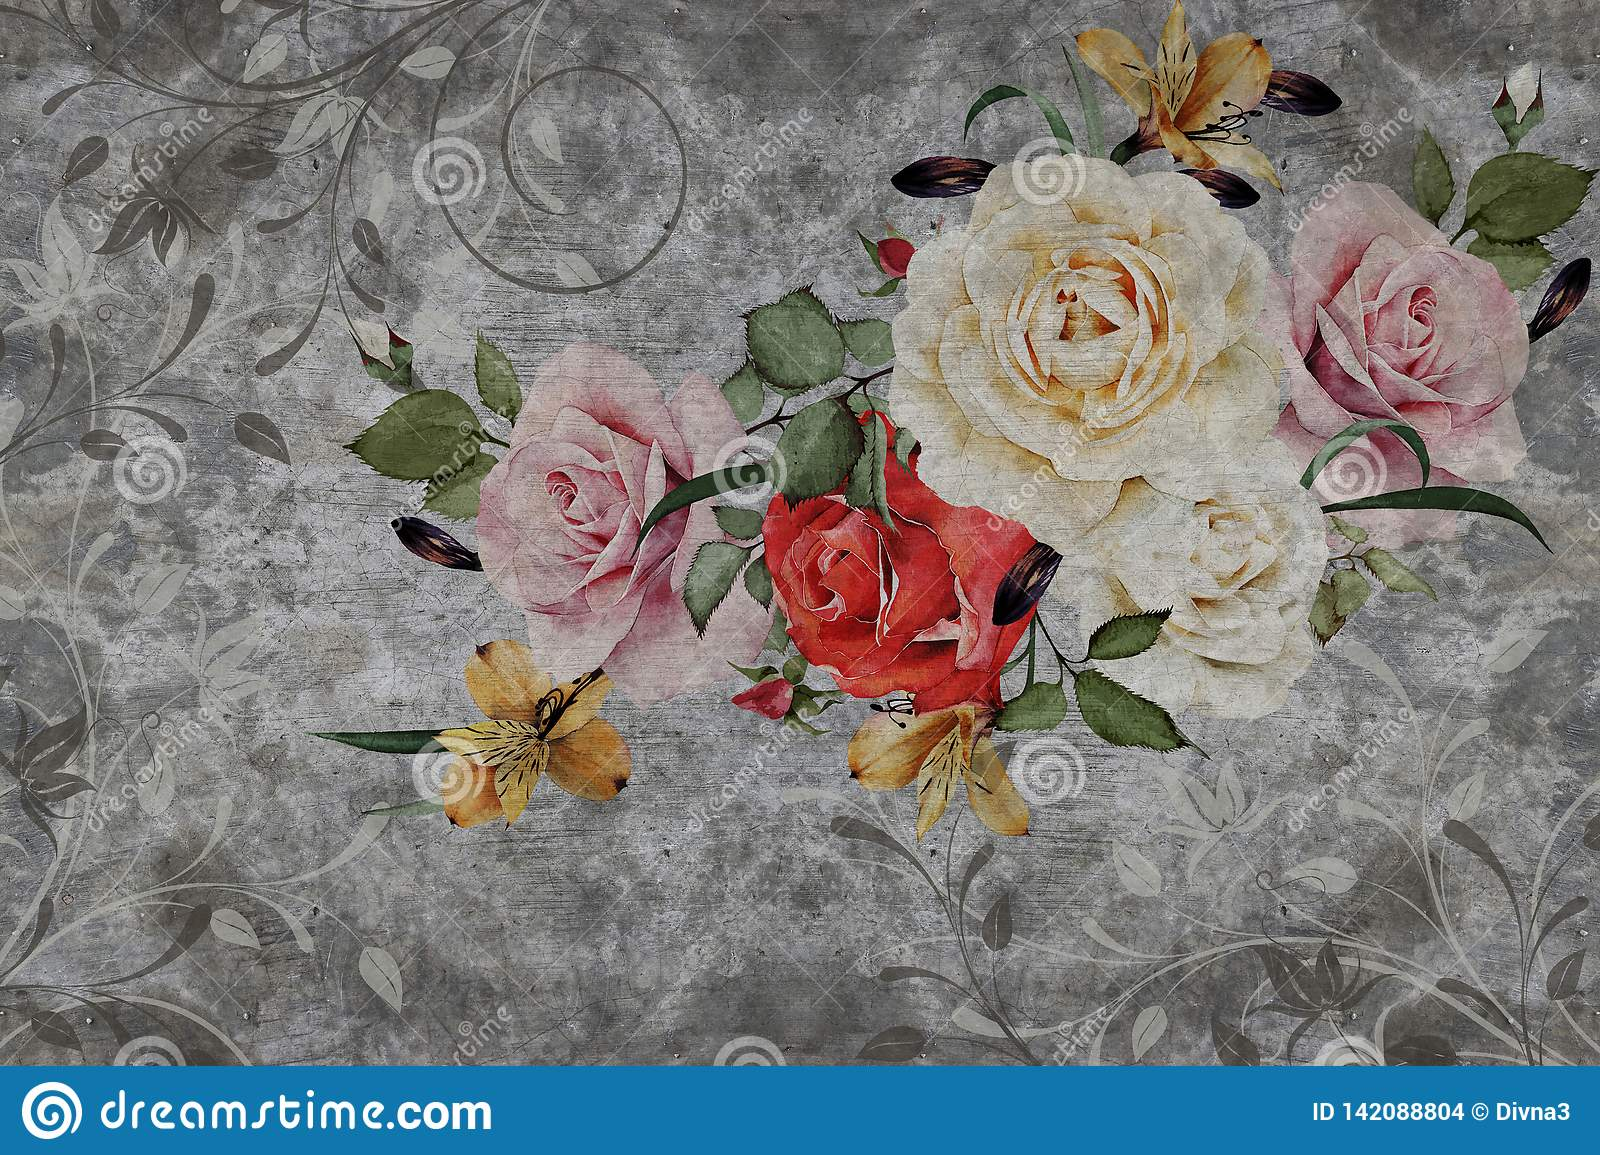 d wallpaper roses flower concrete wall textured background original panel will turn your room most recent world 142088804